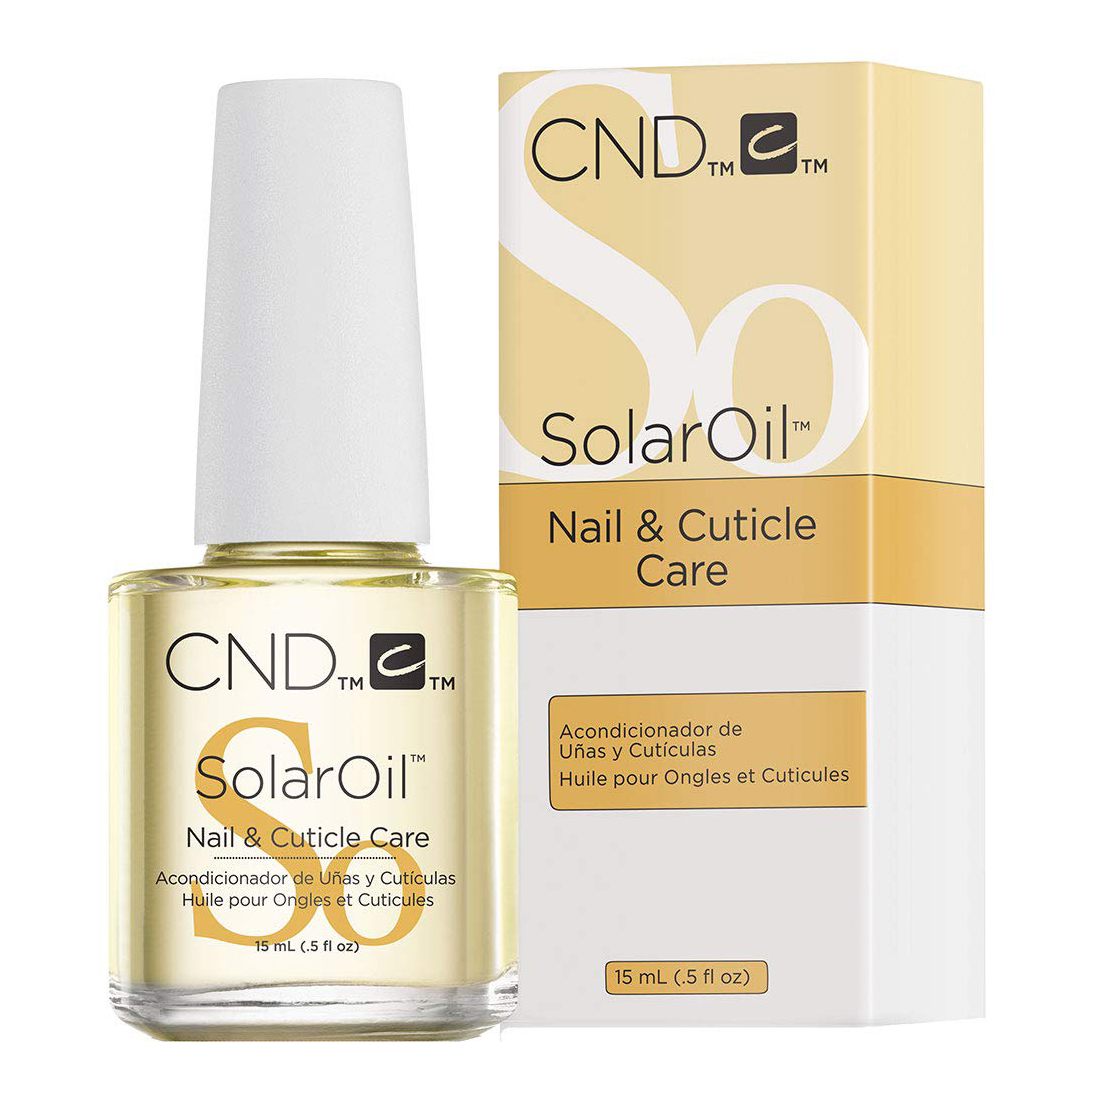 If You Have Weak Nails, You Need This $9 Cuticle Oil